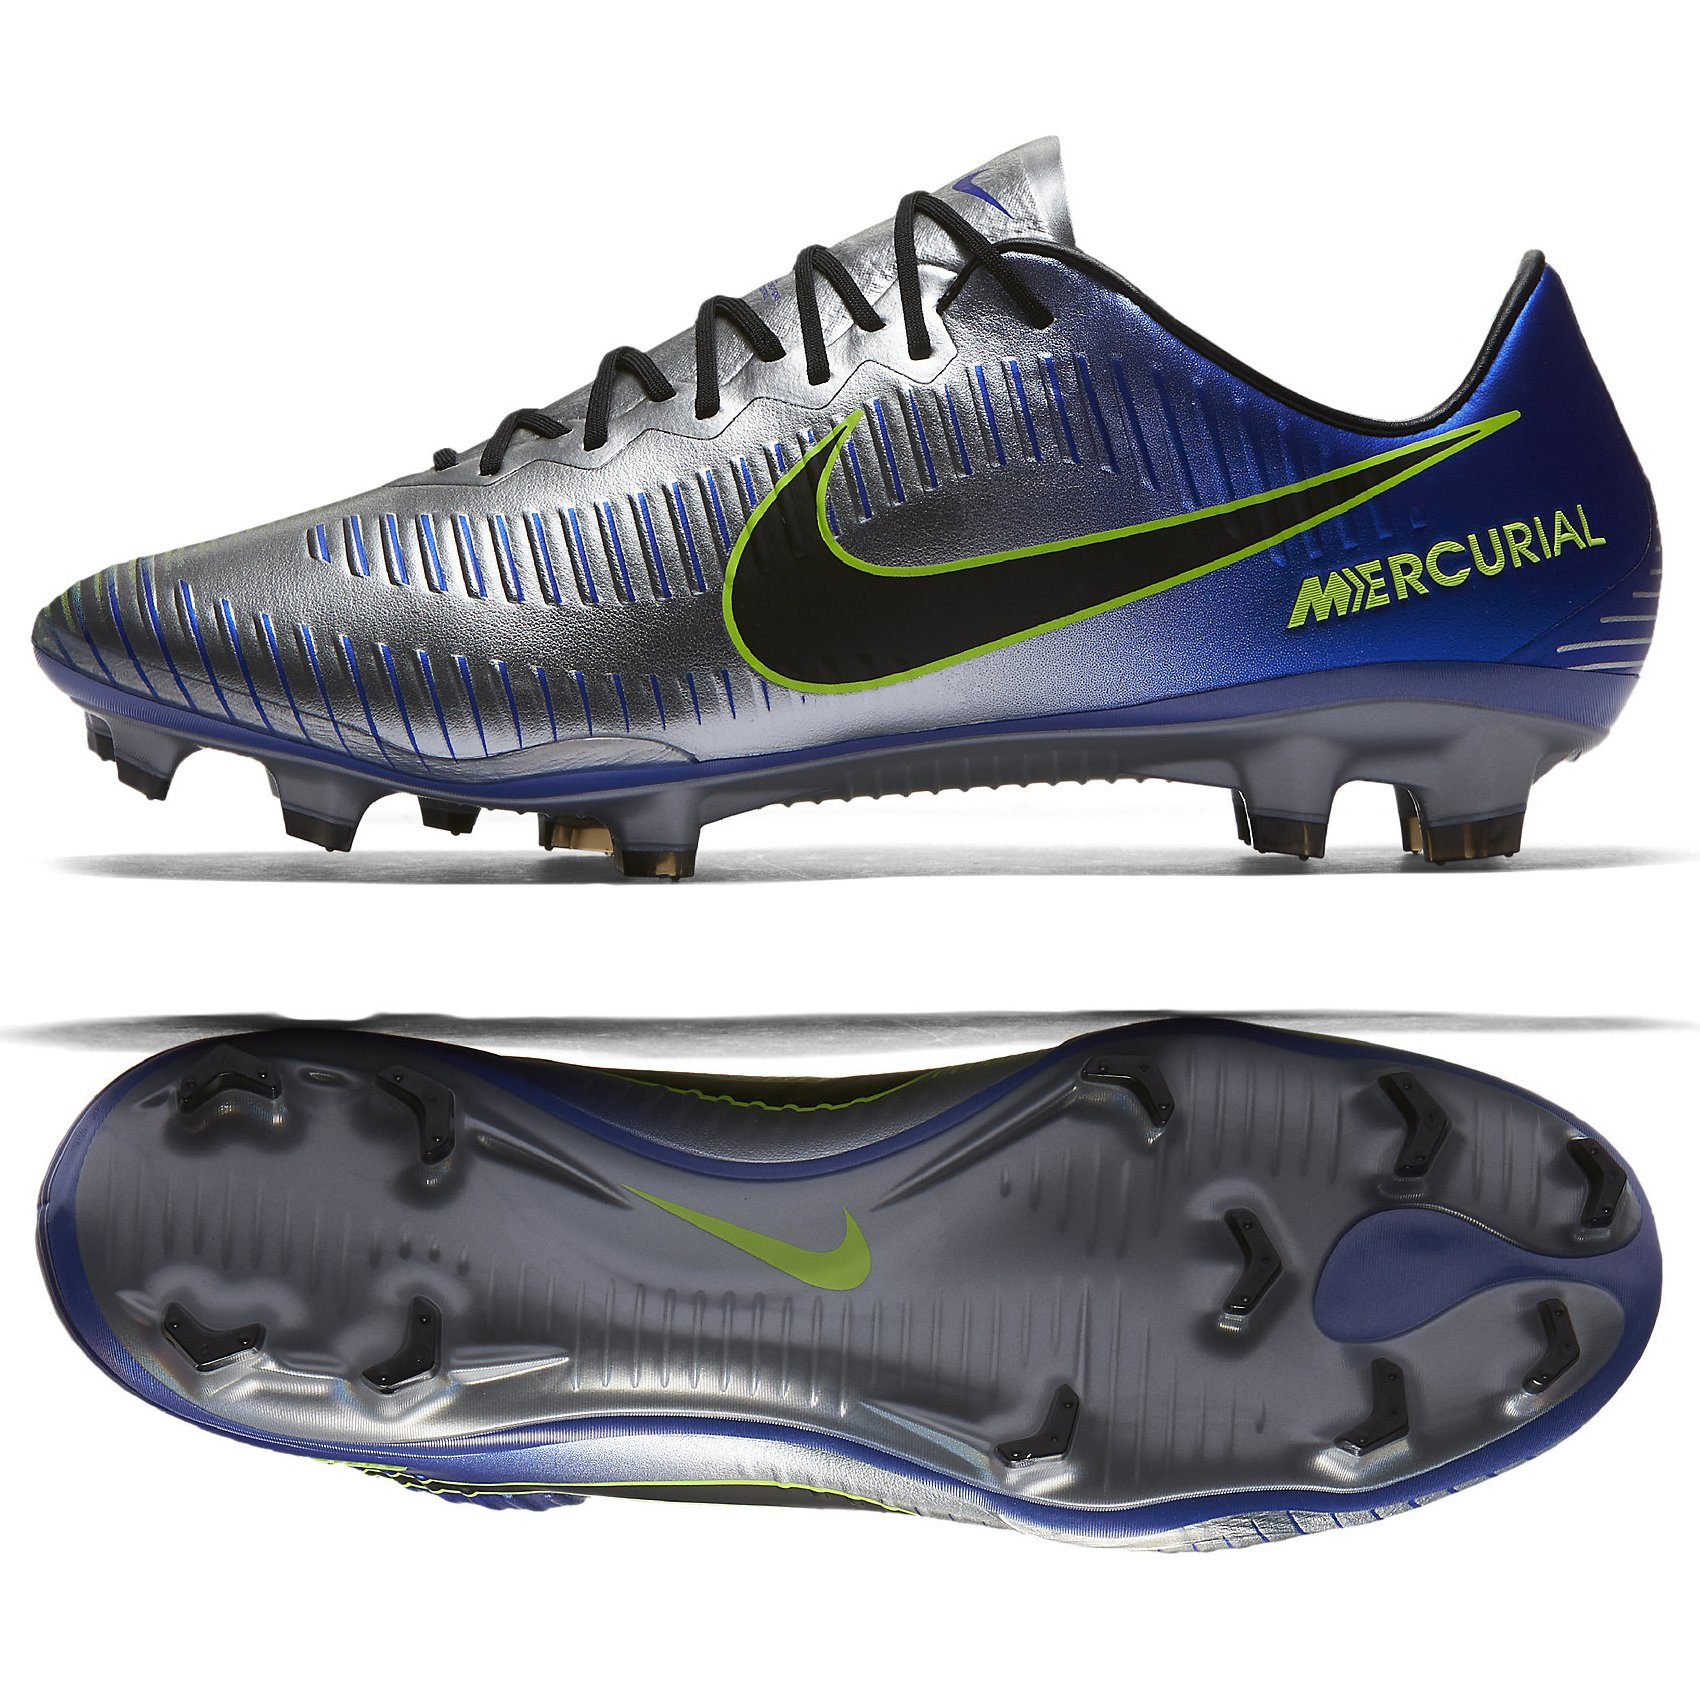 95365a785 Galleon - Nike Neymar Mercurial Vapor XI FG Cleats  Racer Blue  (8.5)